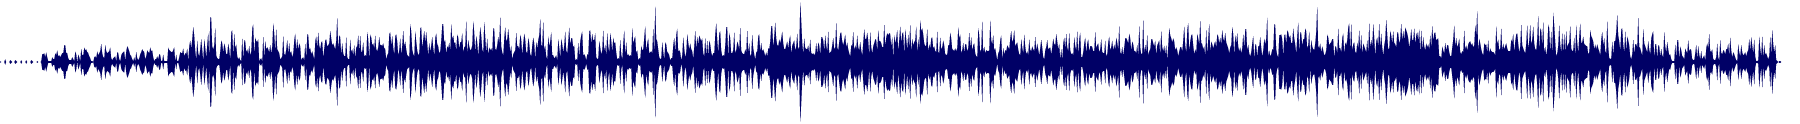 waveform of track #87735